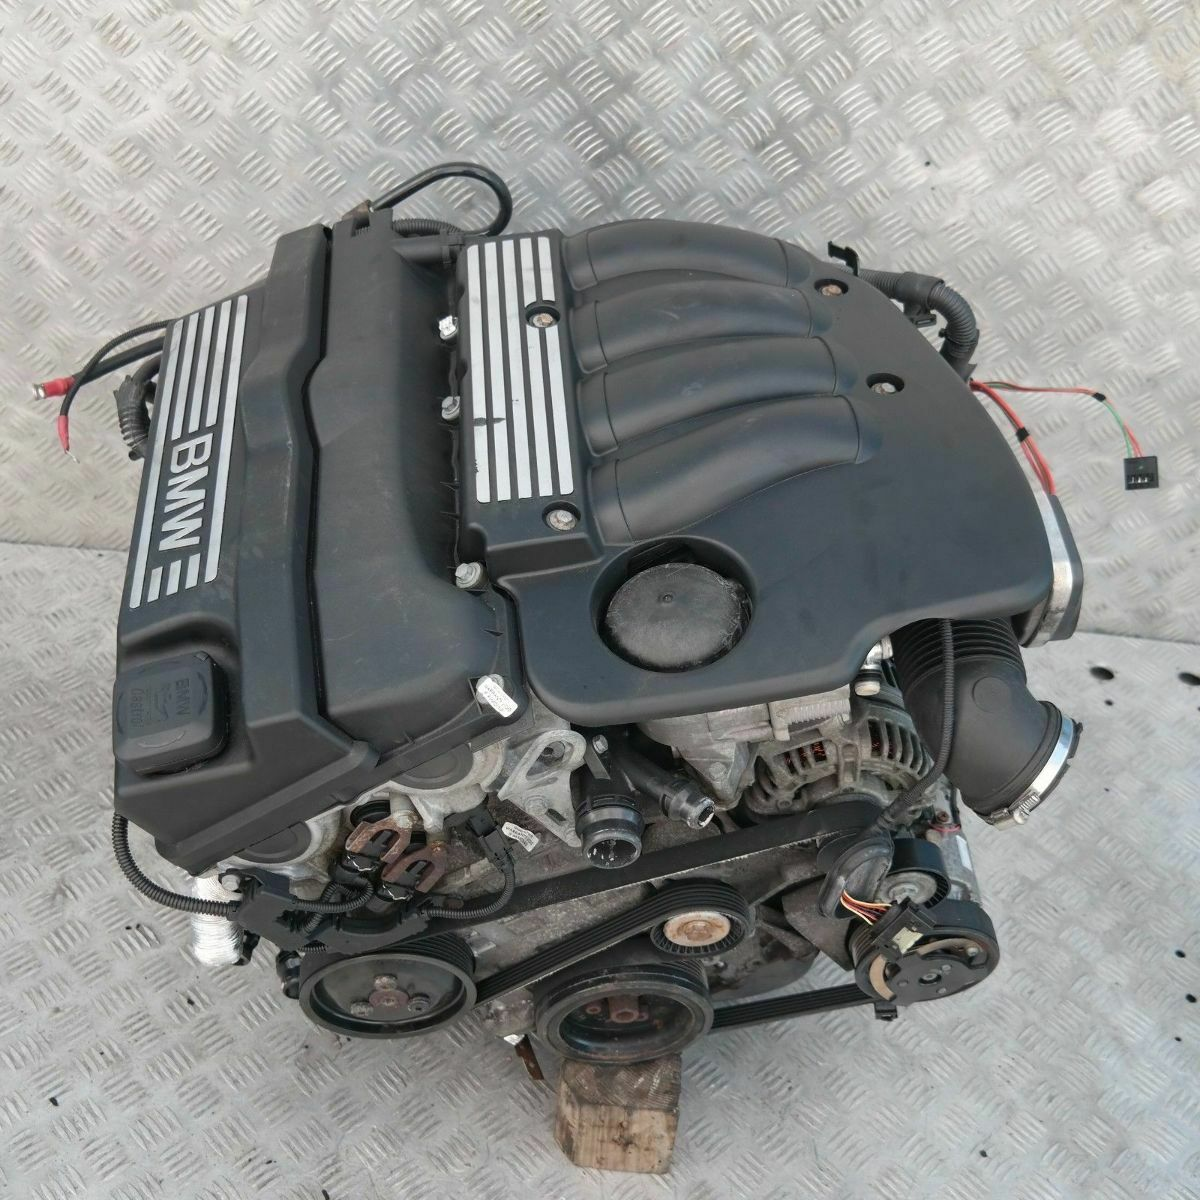 Bmw 1 3 Series E87 E90 E91 120i 320i 150hp Complete Engine N46b20b